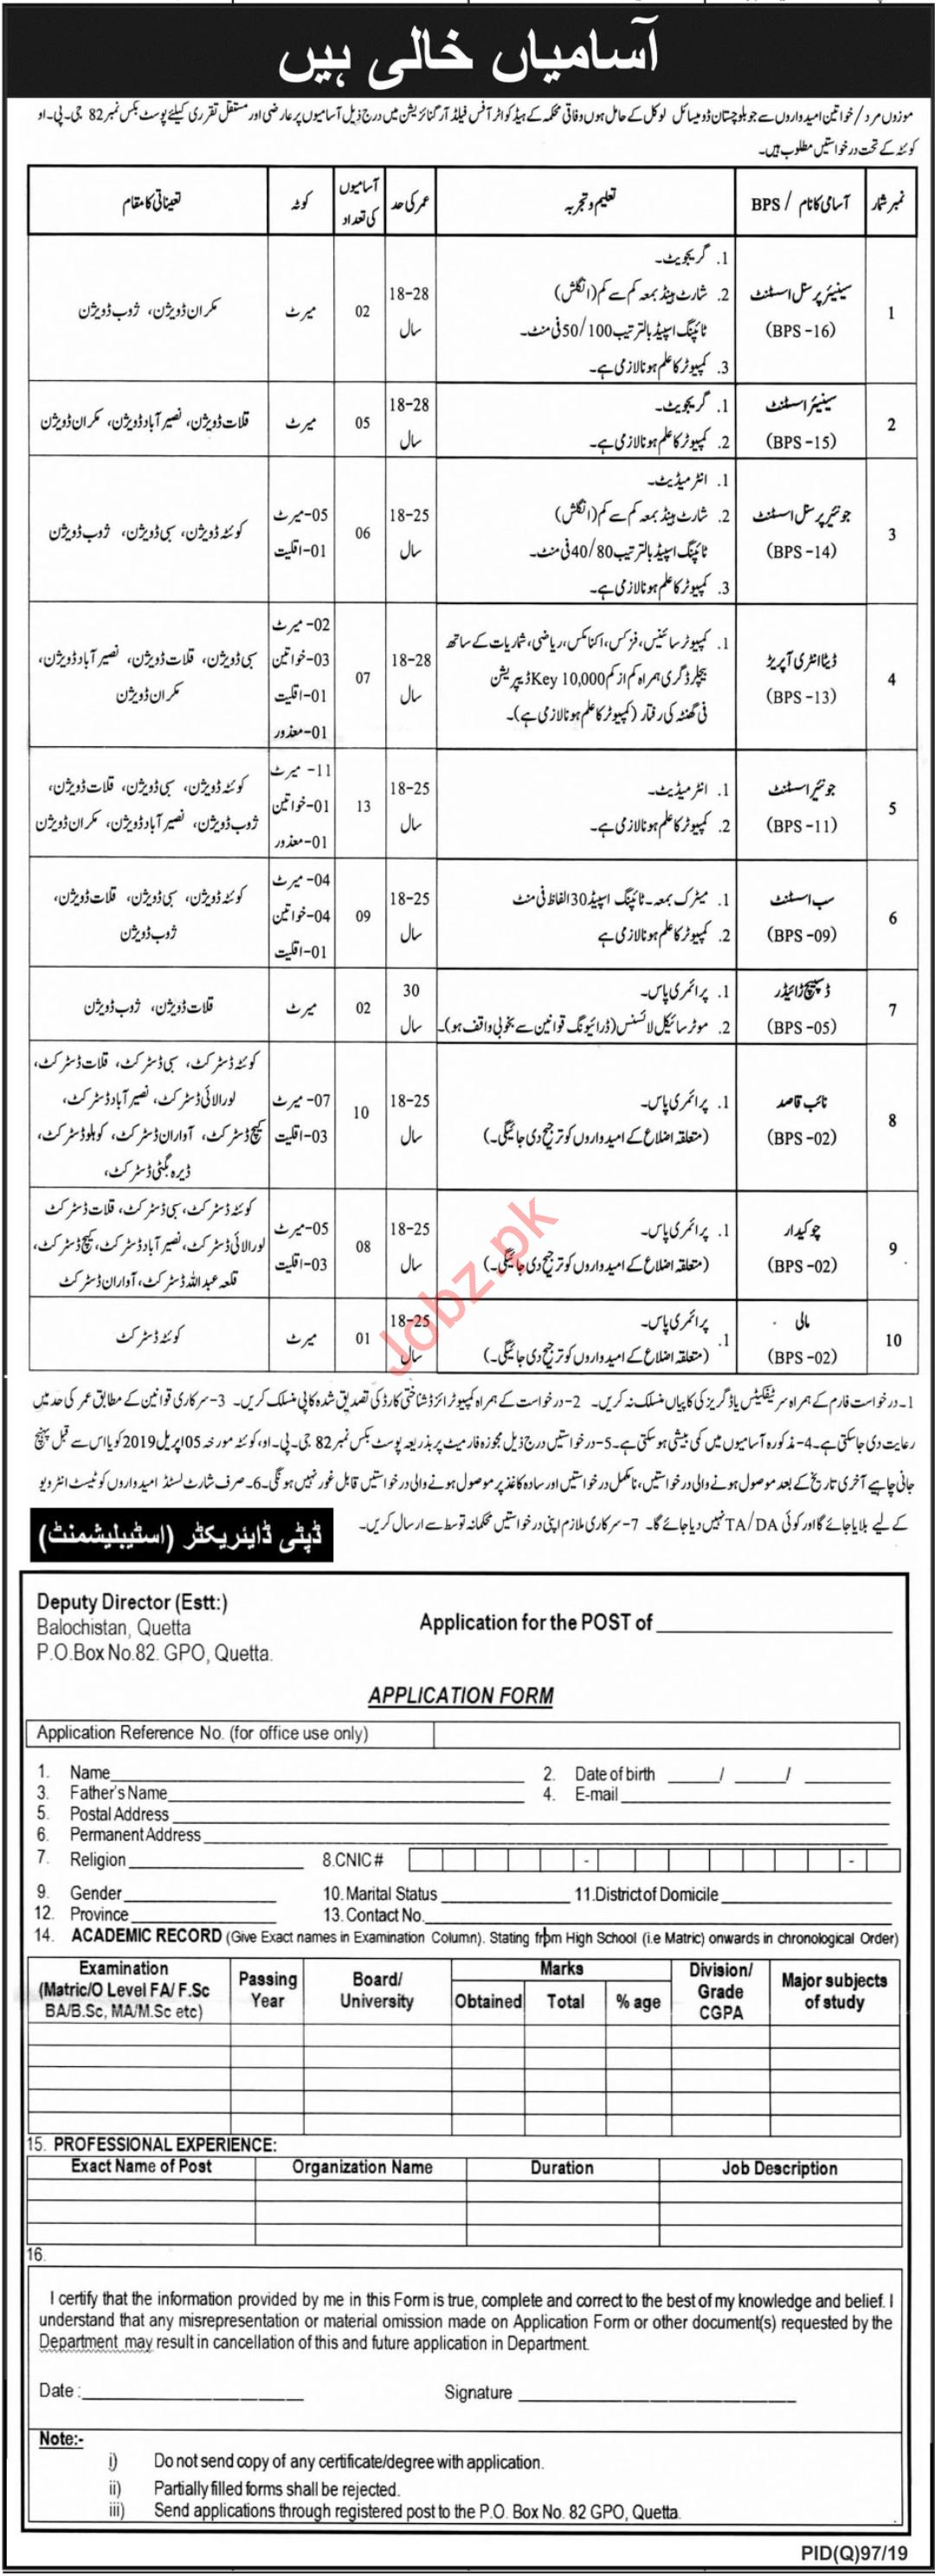 Federal Government Organization Clerical Jobs 2019